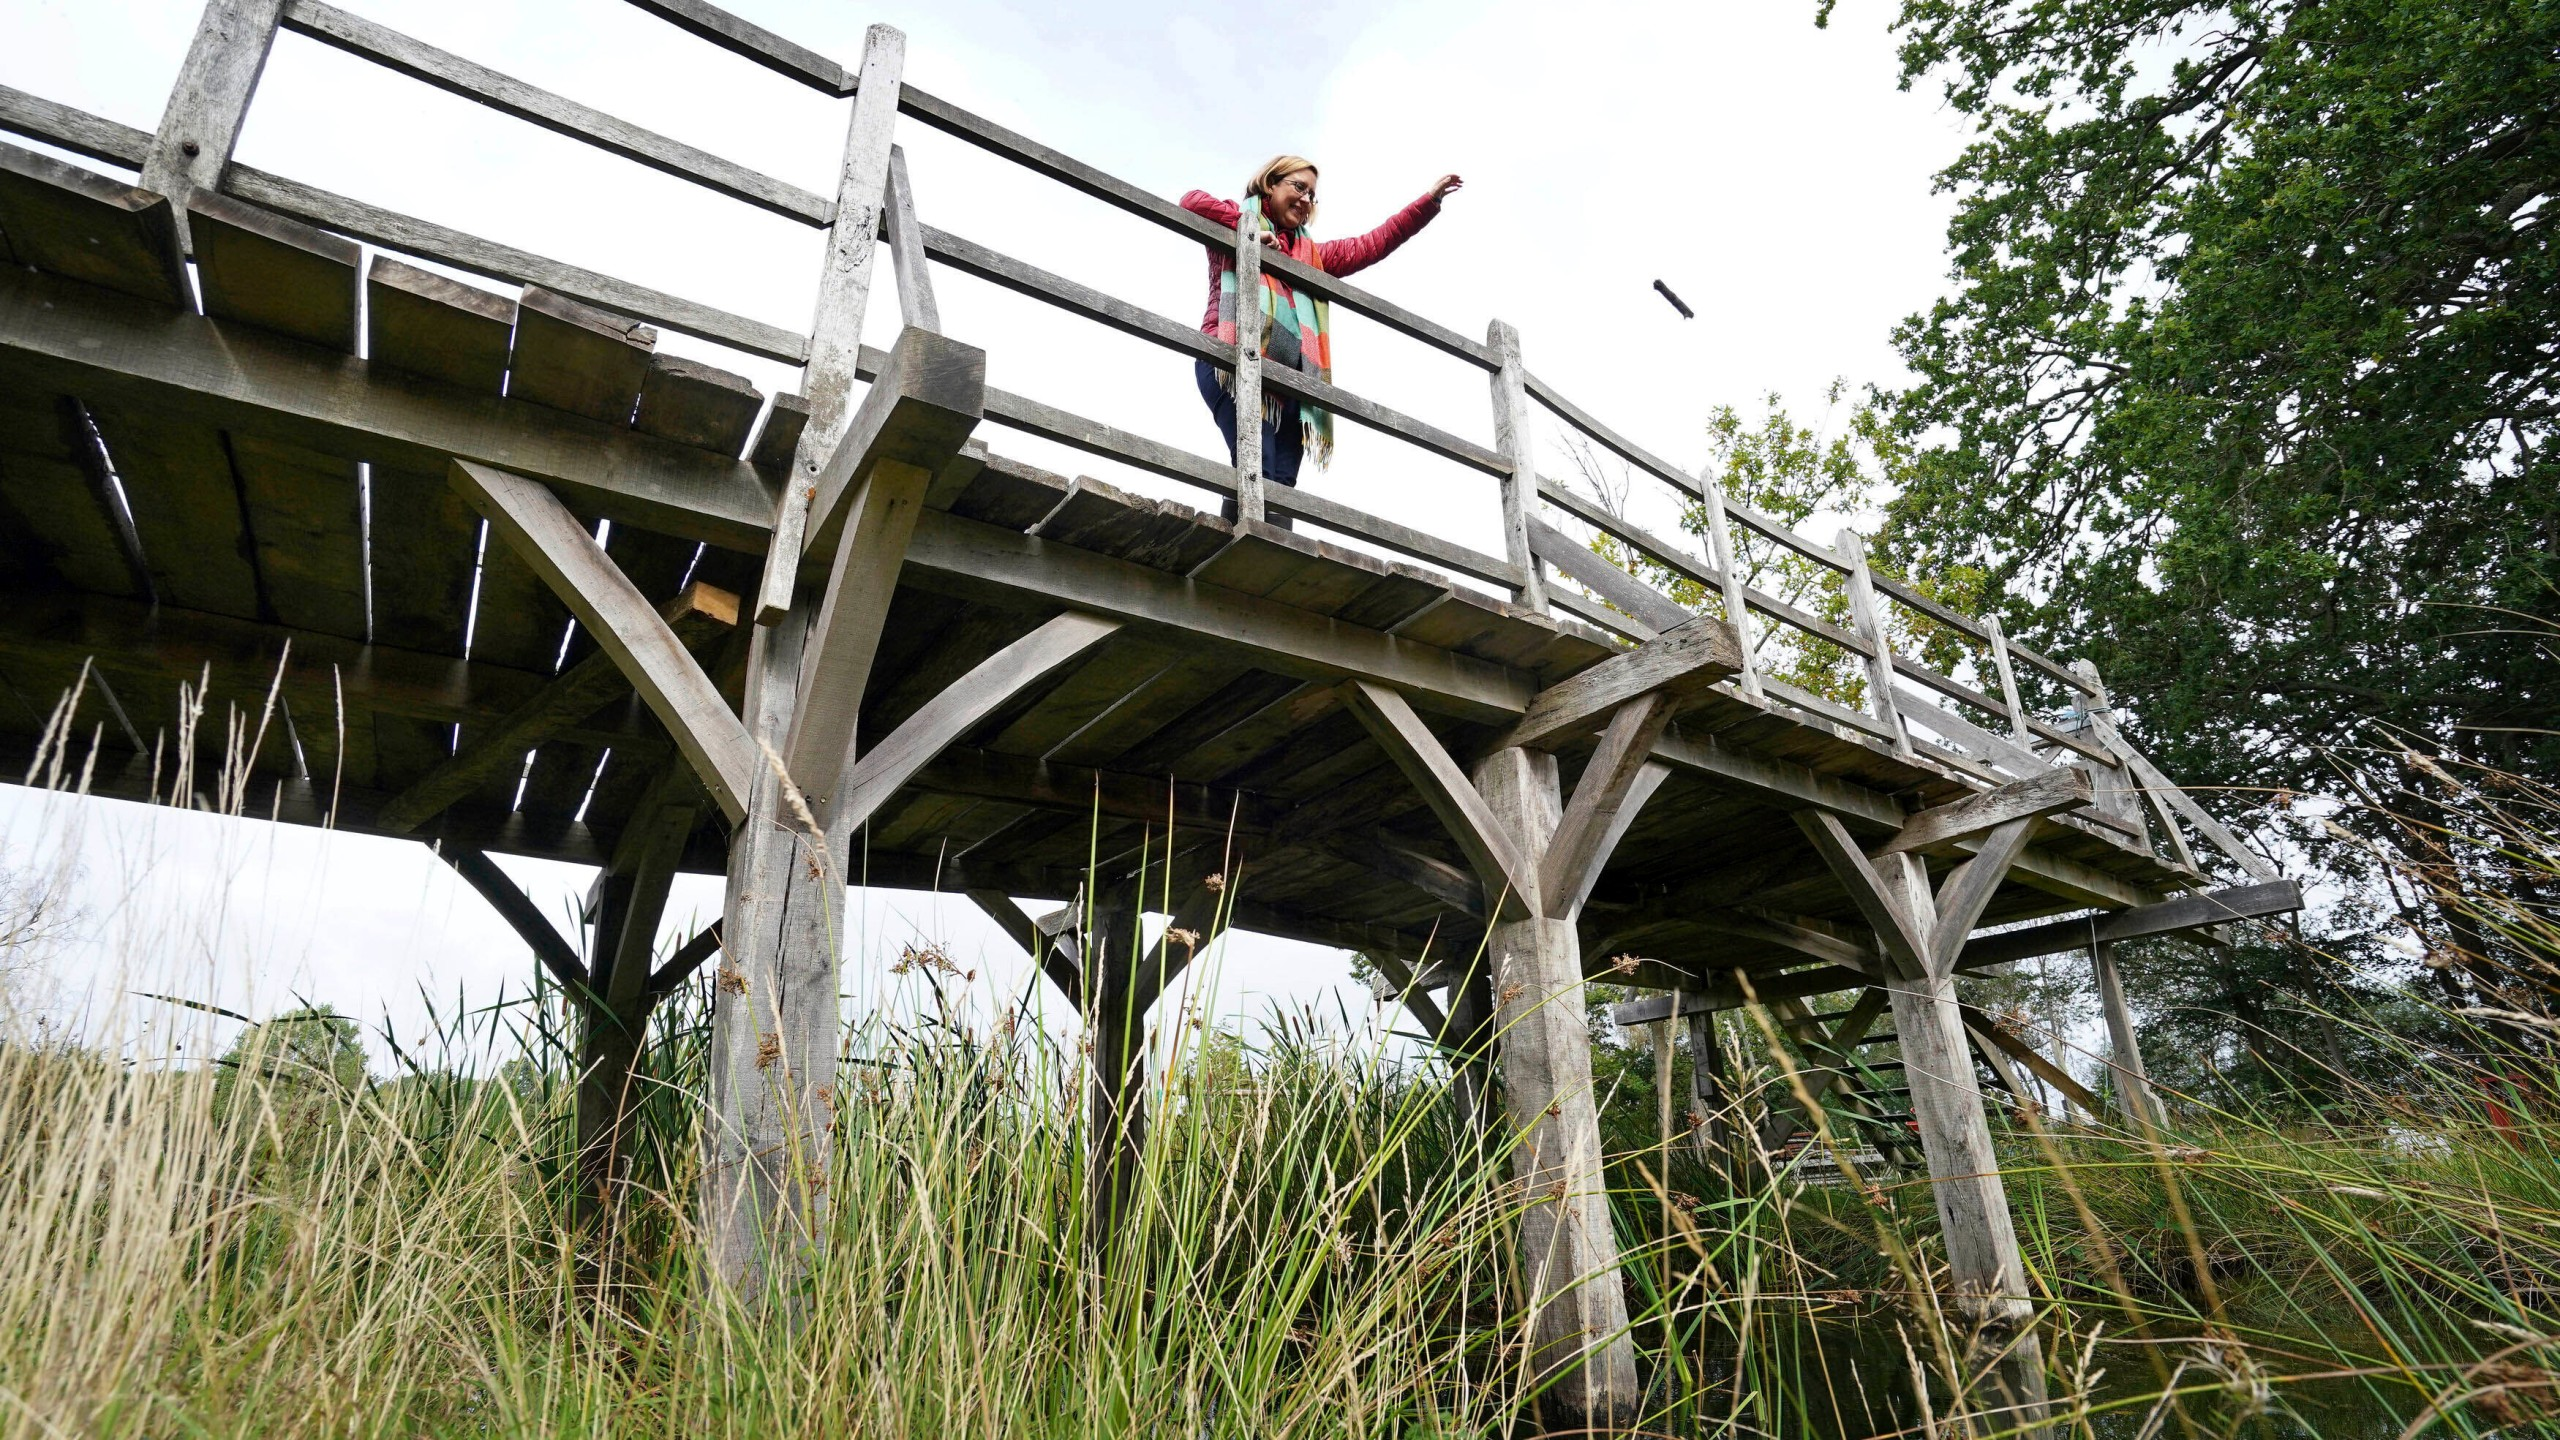 Silke Lohmann of Summers Place Auctions stands on the original Poohsticks Bridge from Ashdown Forest, featured in A.A. Milne's Winnie the Pooh books and E.H. Shepard's illustrations, near its original location in Tonbridge, Kent, England, Thursday, Sept. 30, 2021. (Gareth Fuller/PA via AP)